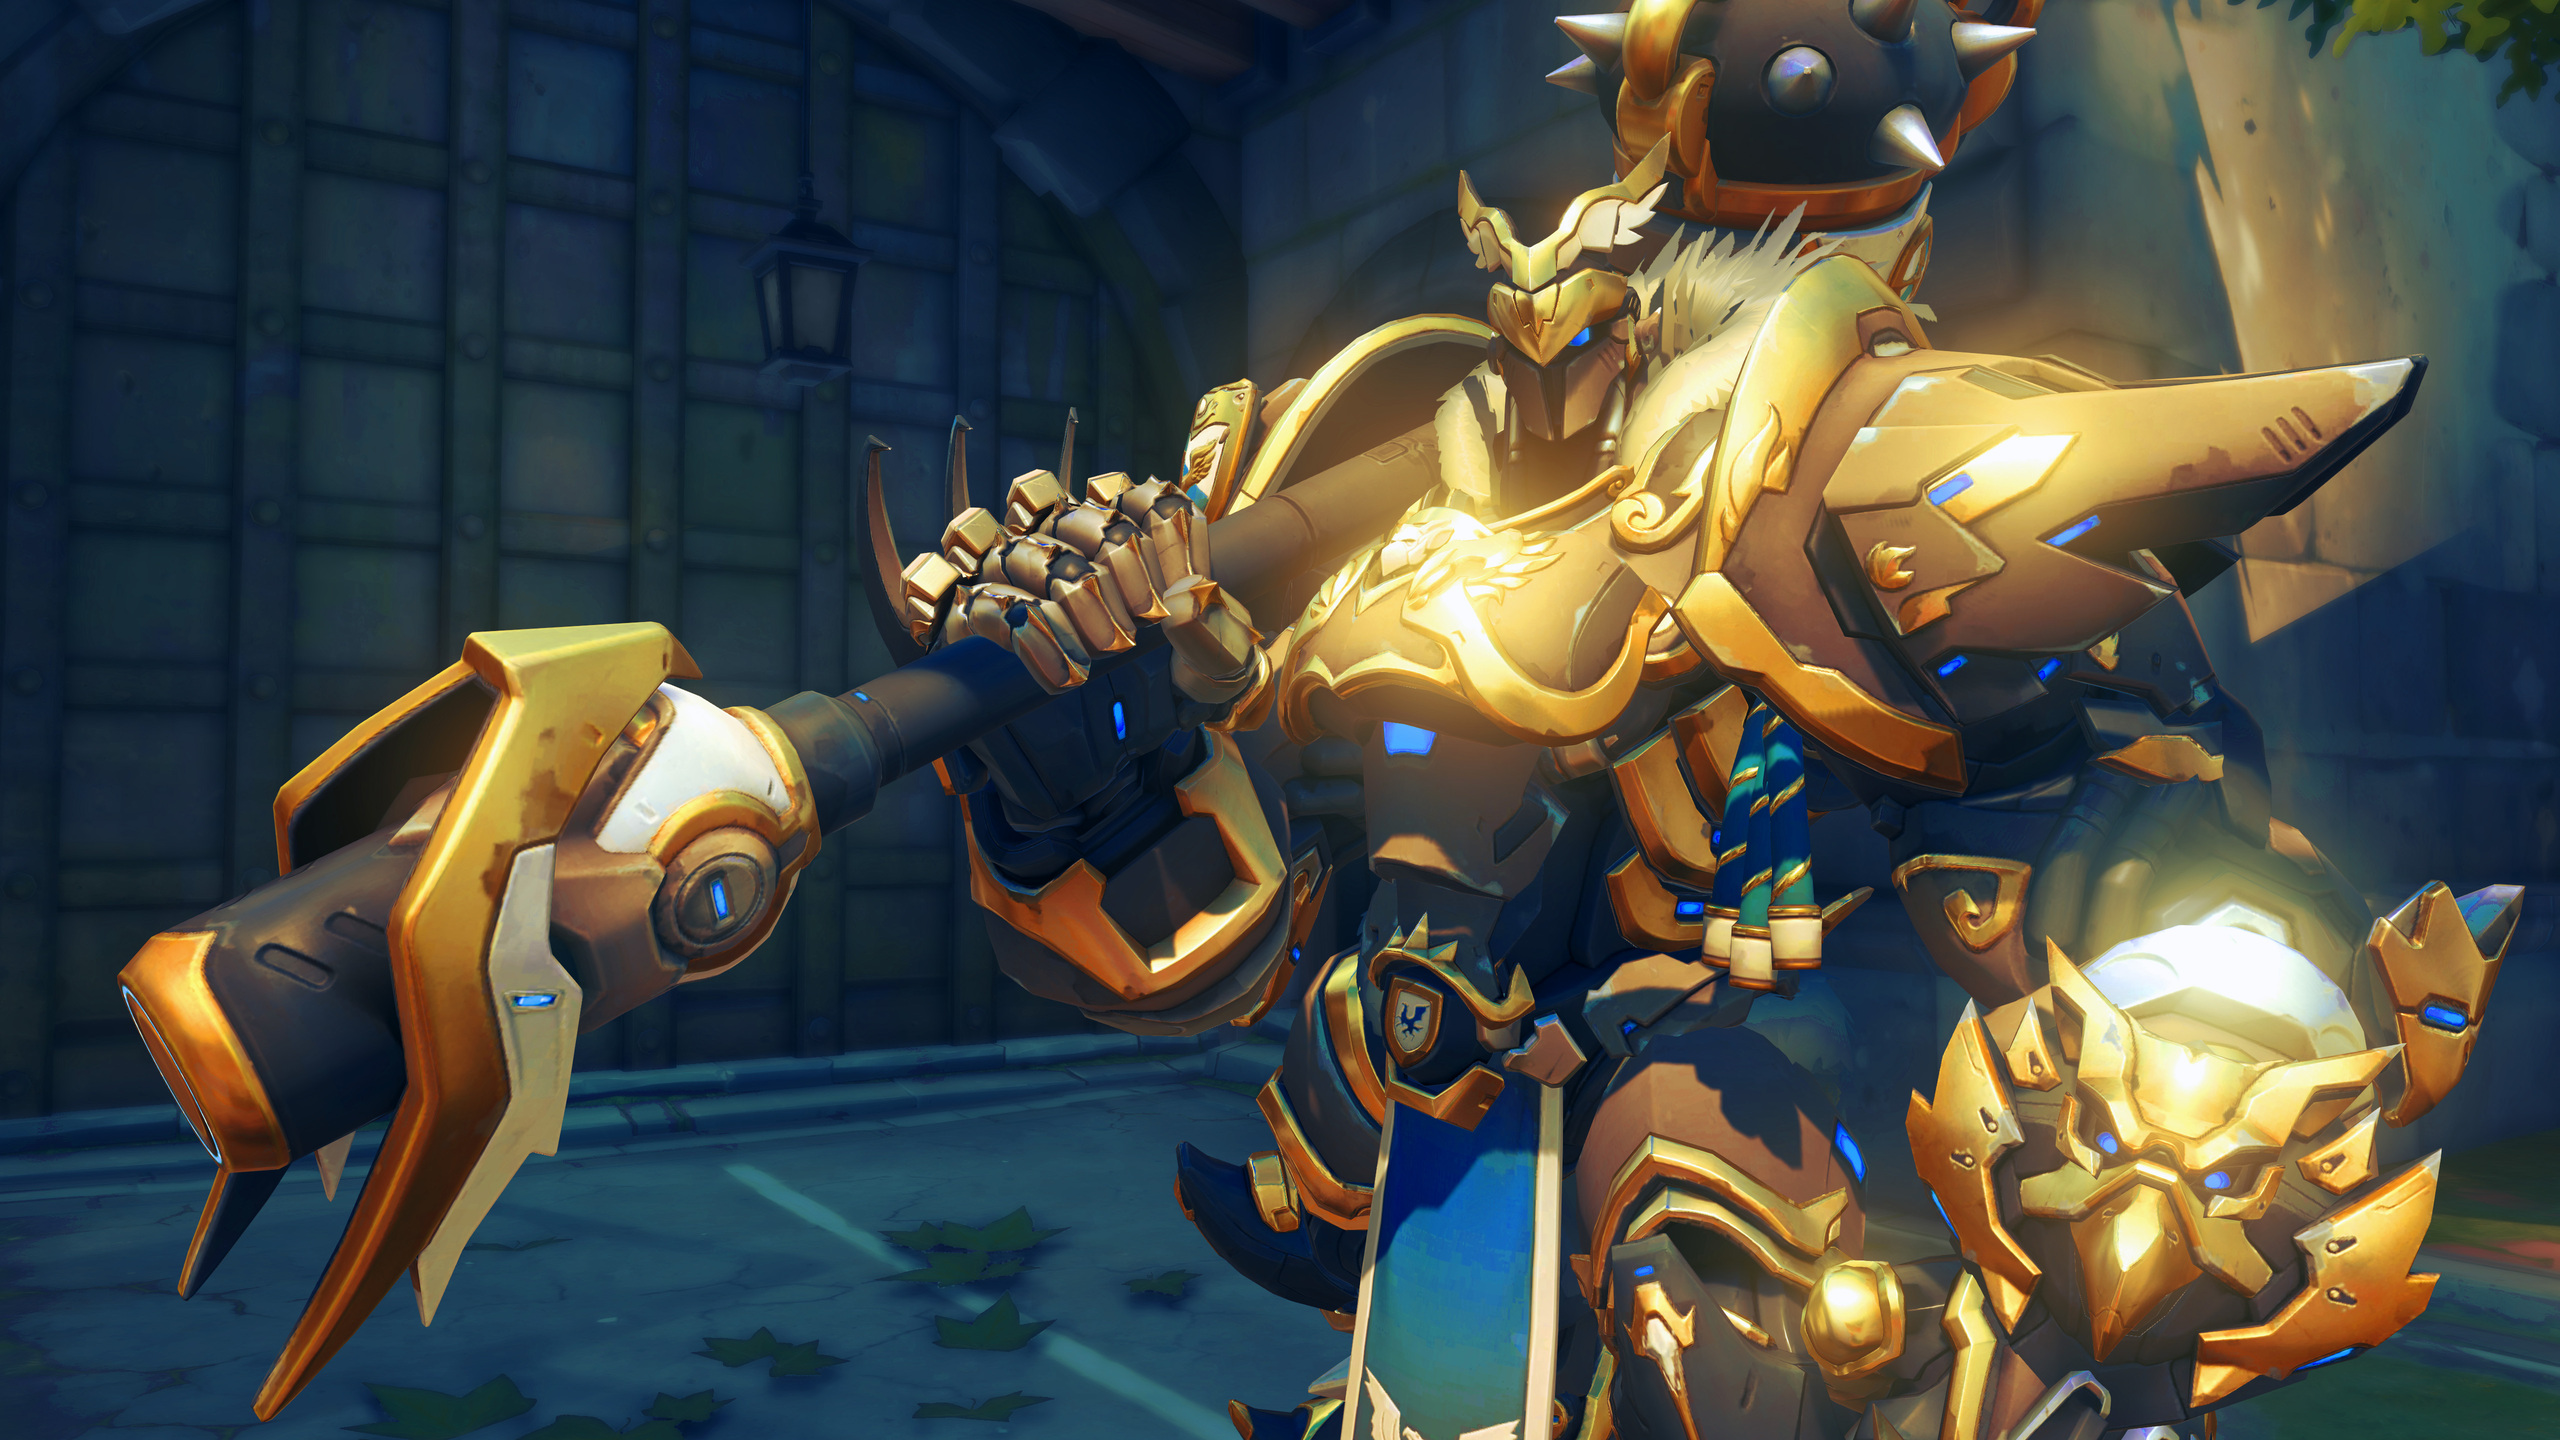 2560x1440 Reinhardt In Overwatch 1440p Resolution Hd 4k Wallpapers Images Backgrounds Photos And Pictures